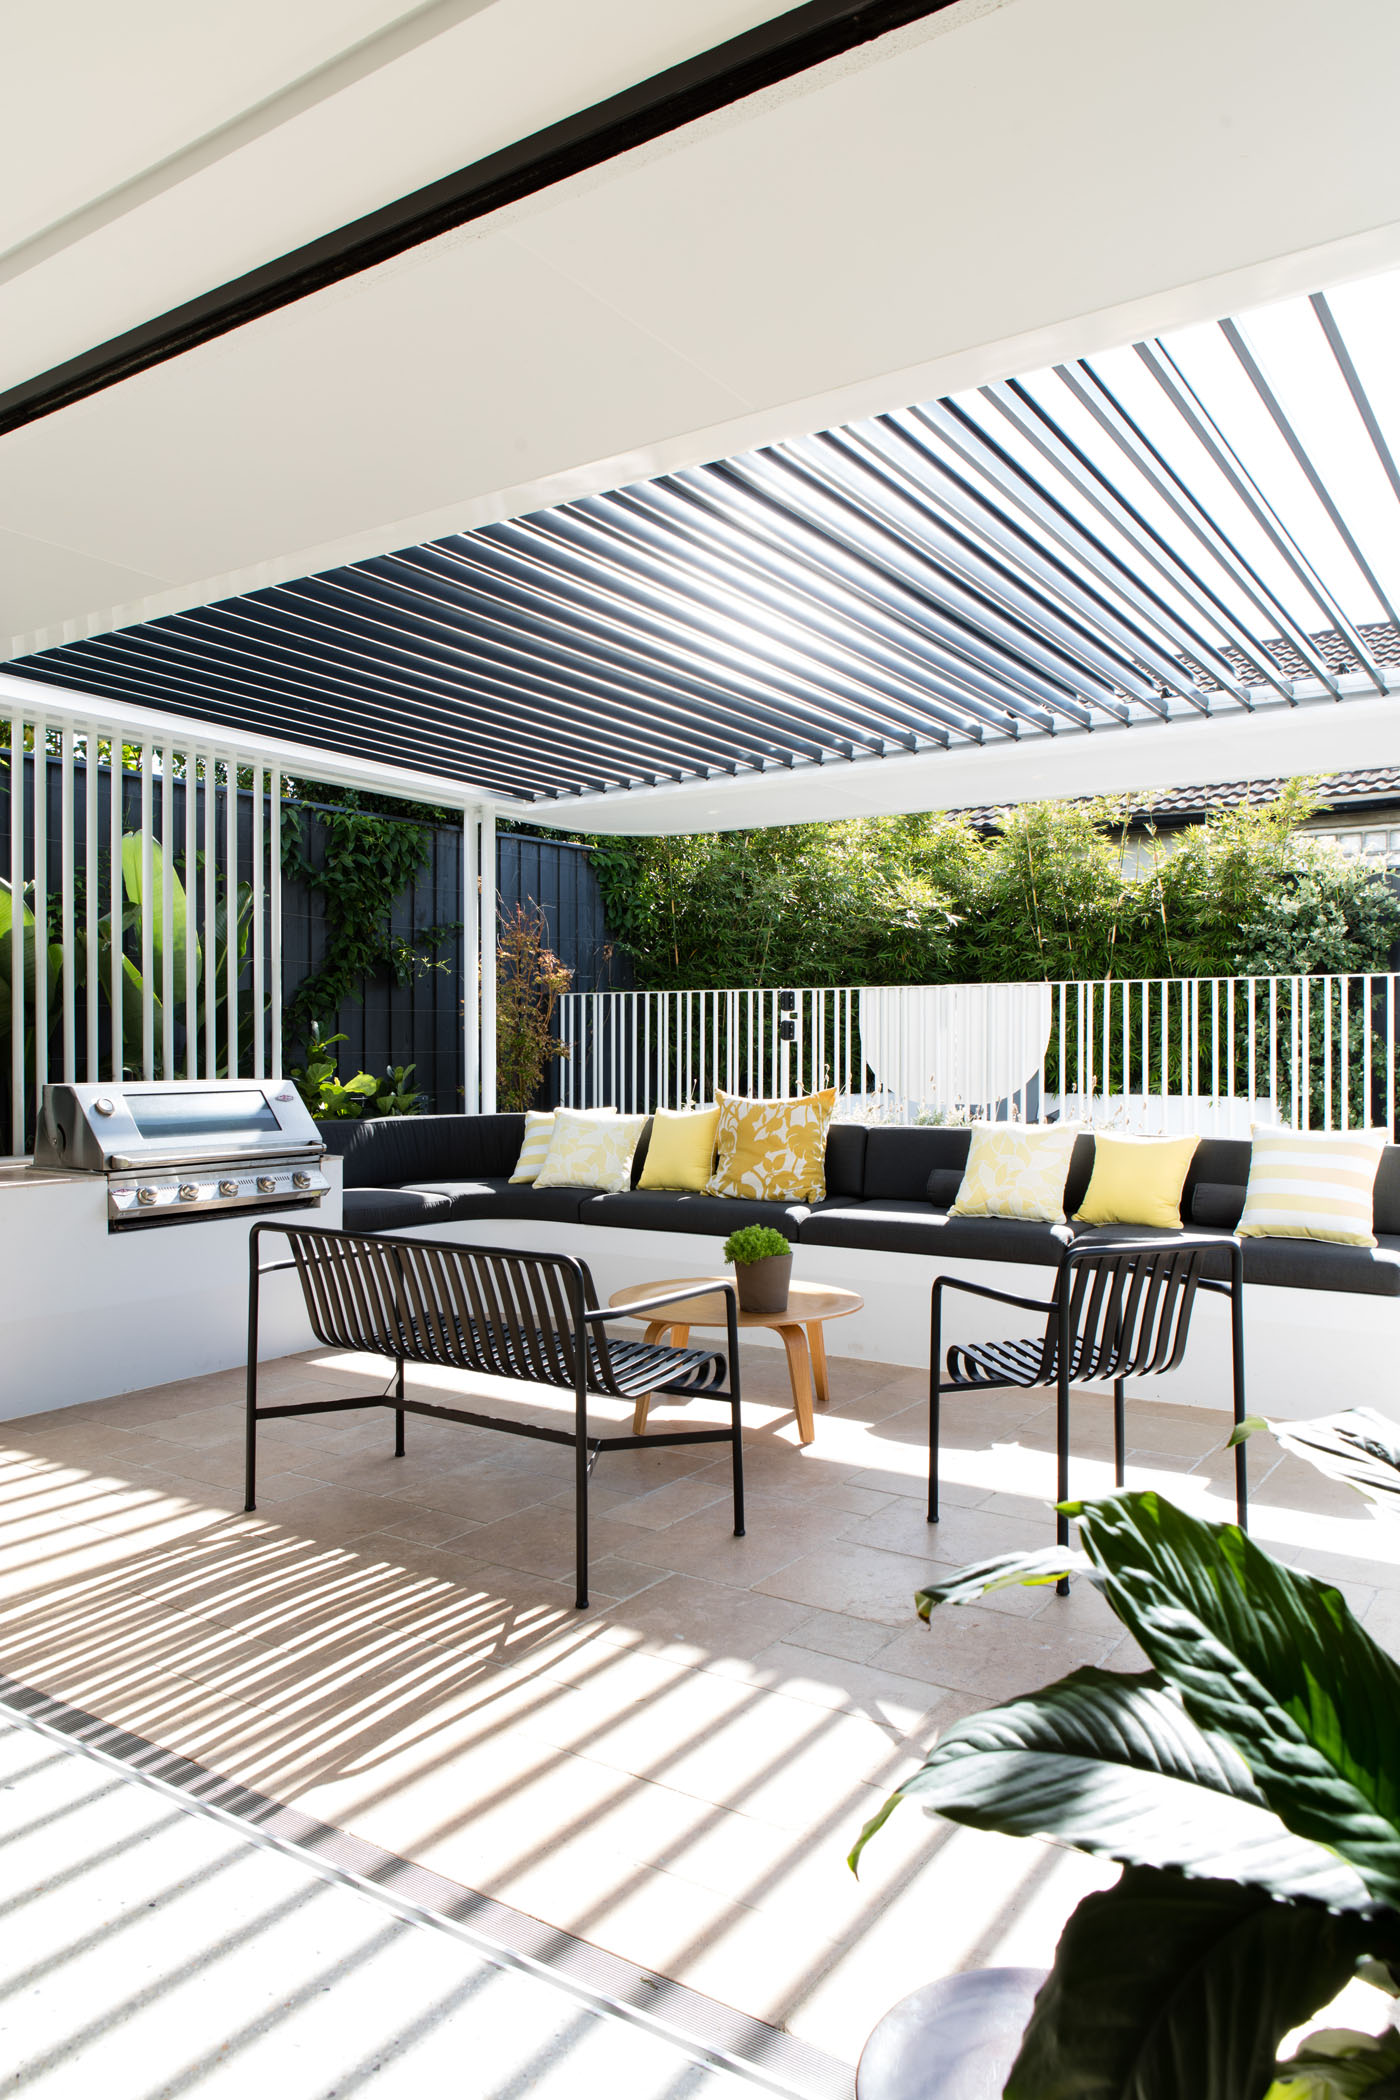 Conway Atkins House in Dover Heights by Sydney architect Sam Crawford Architect. An adjustable pergola protects the occupants from the harsh conditions.